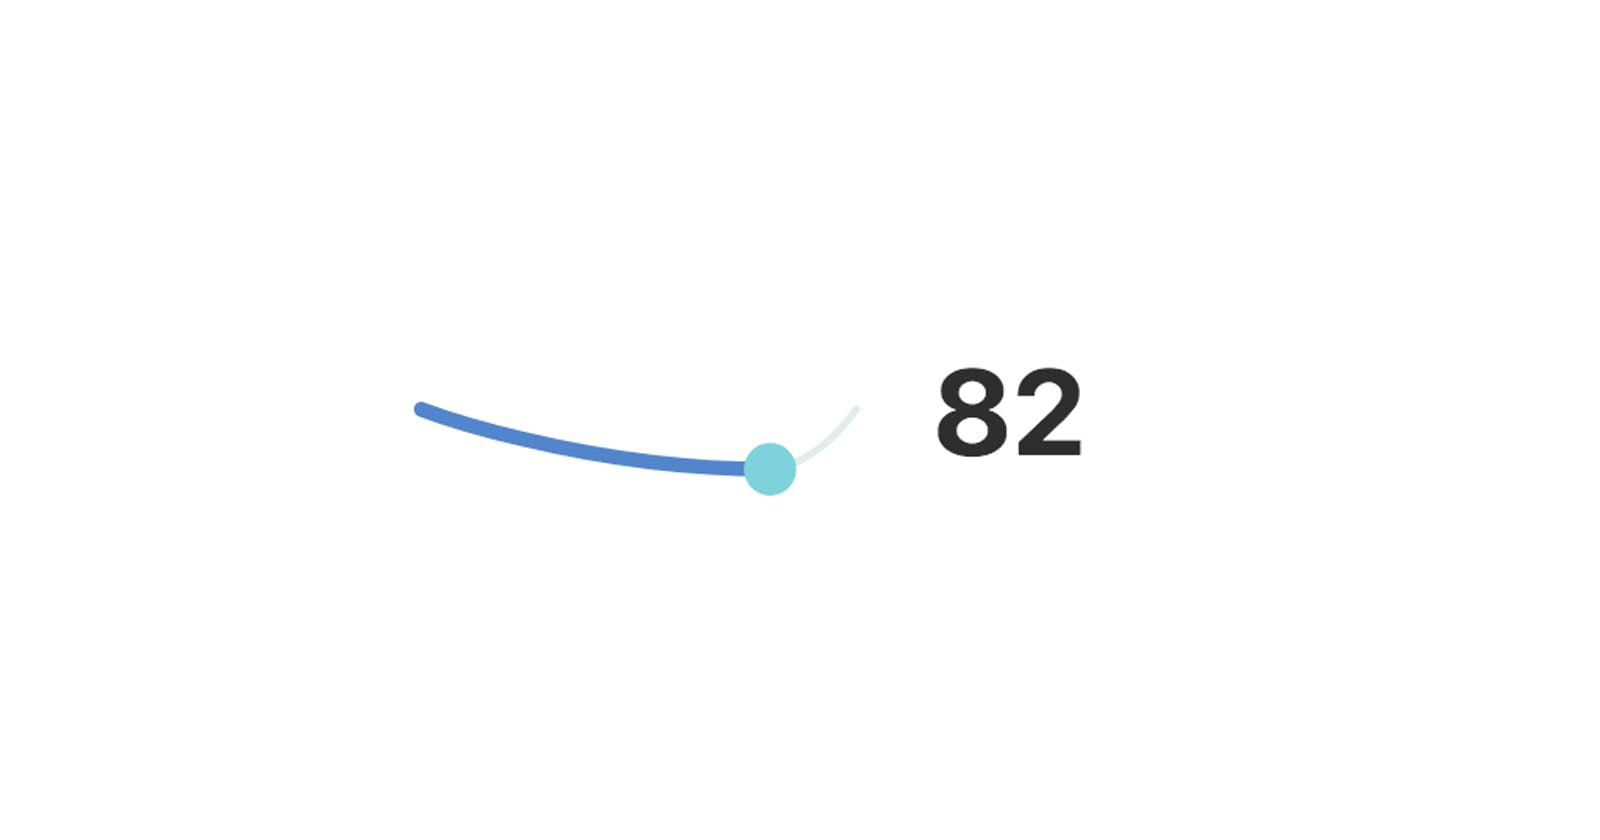 Make a complex slider in React using SVG